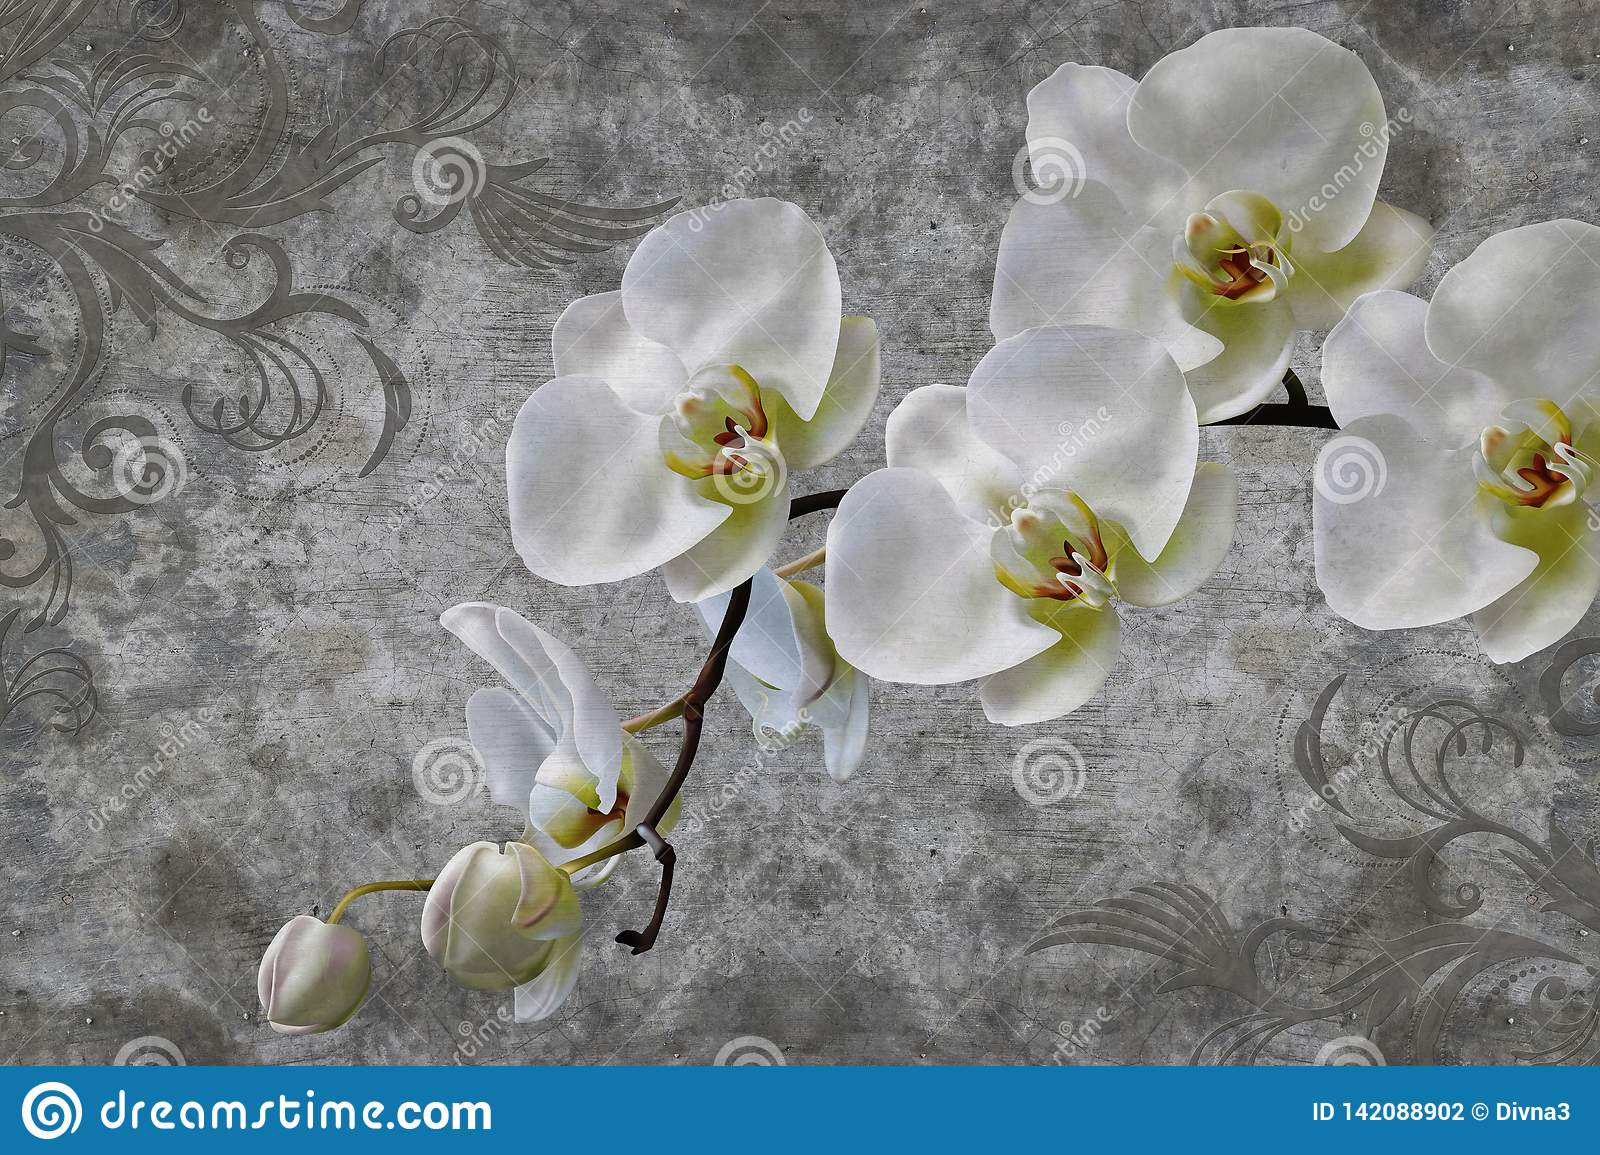 d wallpaper orchids flower concrete wall textured background original panel will turn your room most recent world 142088902